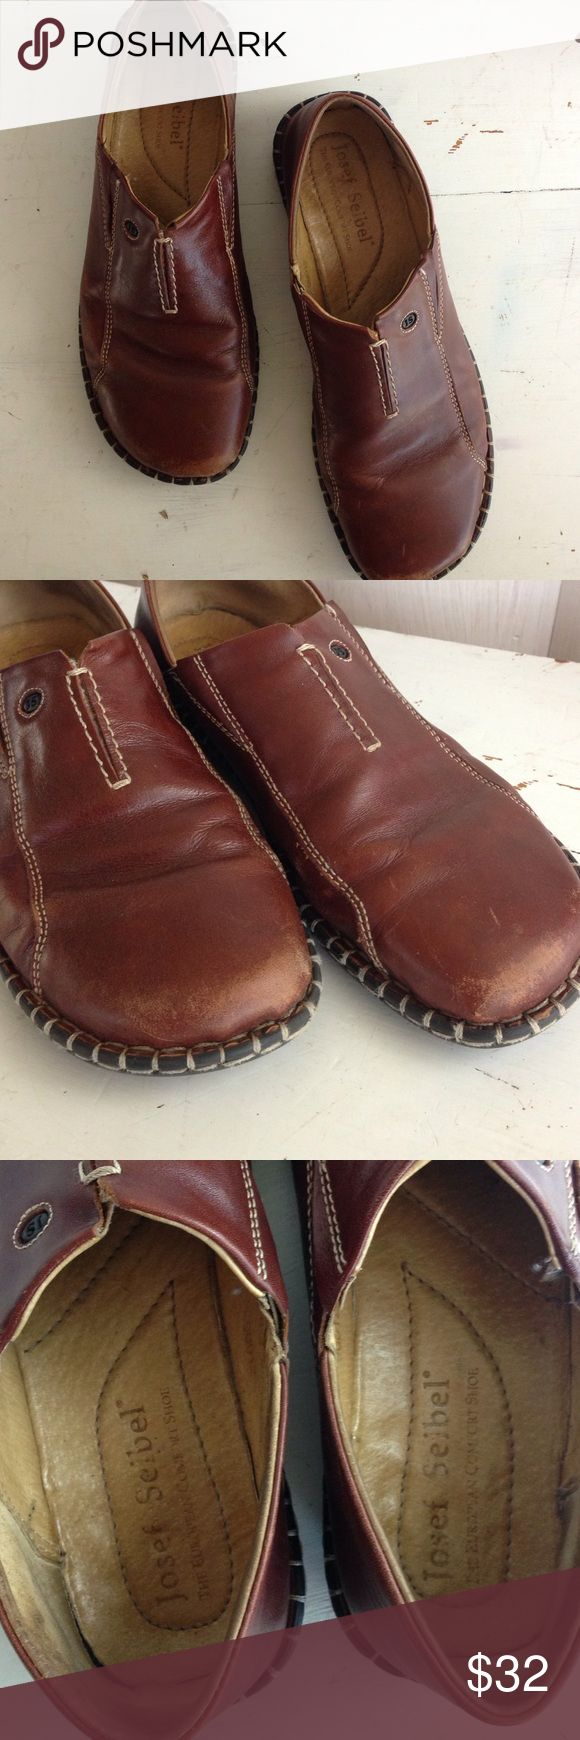 Josef Seibel brown leather shoes Josef Seibel brown leather shoes , very comfortable, good condition some scuffs on the toes. Josef Seibel Shoes Flats & Loafers